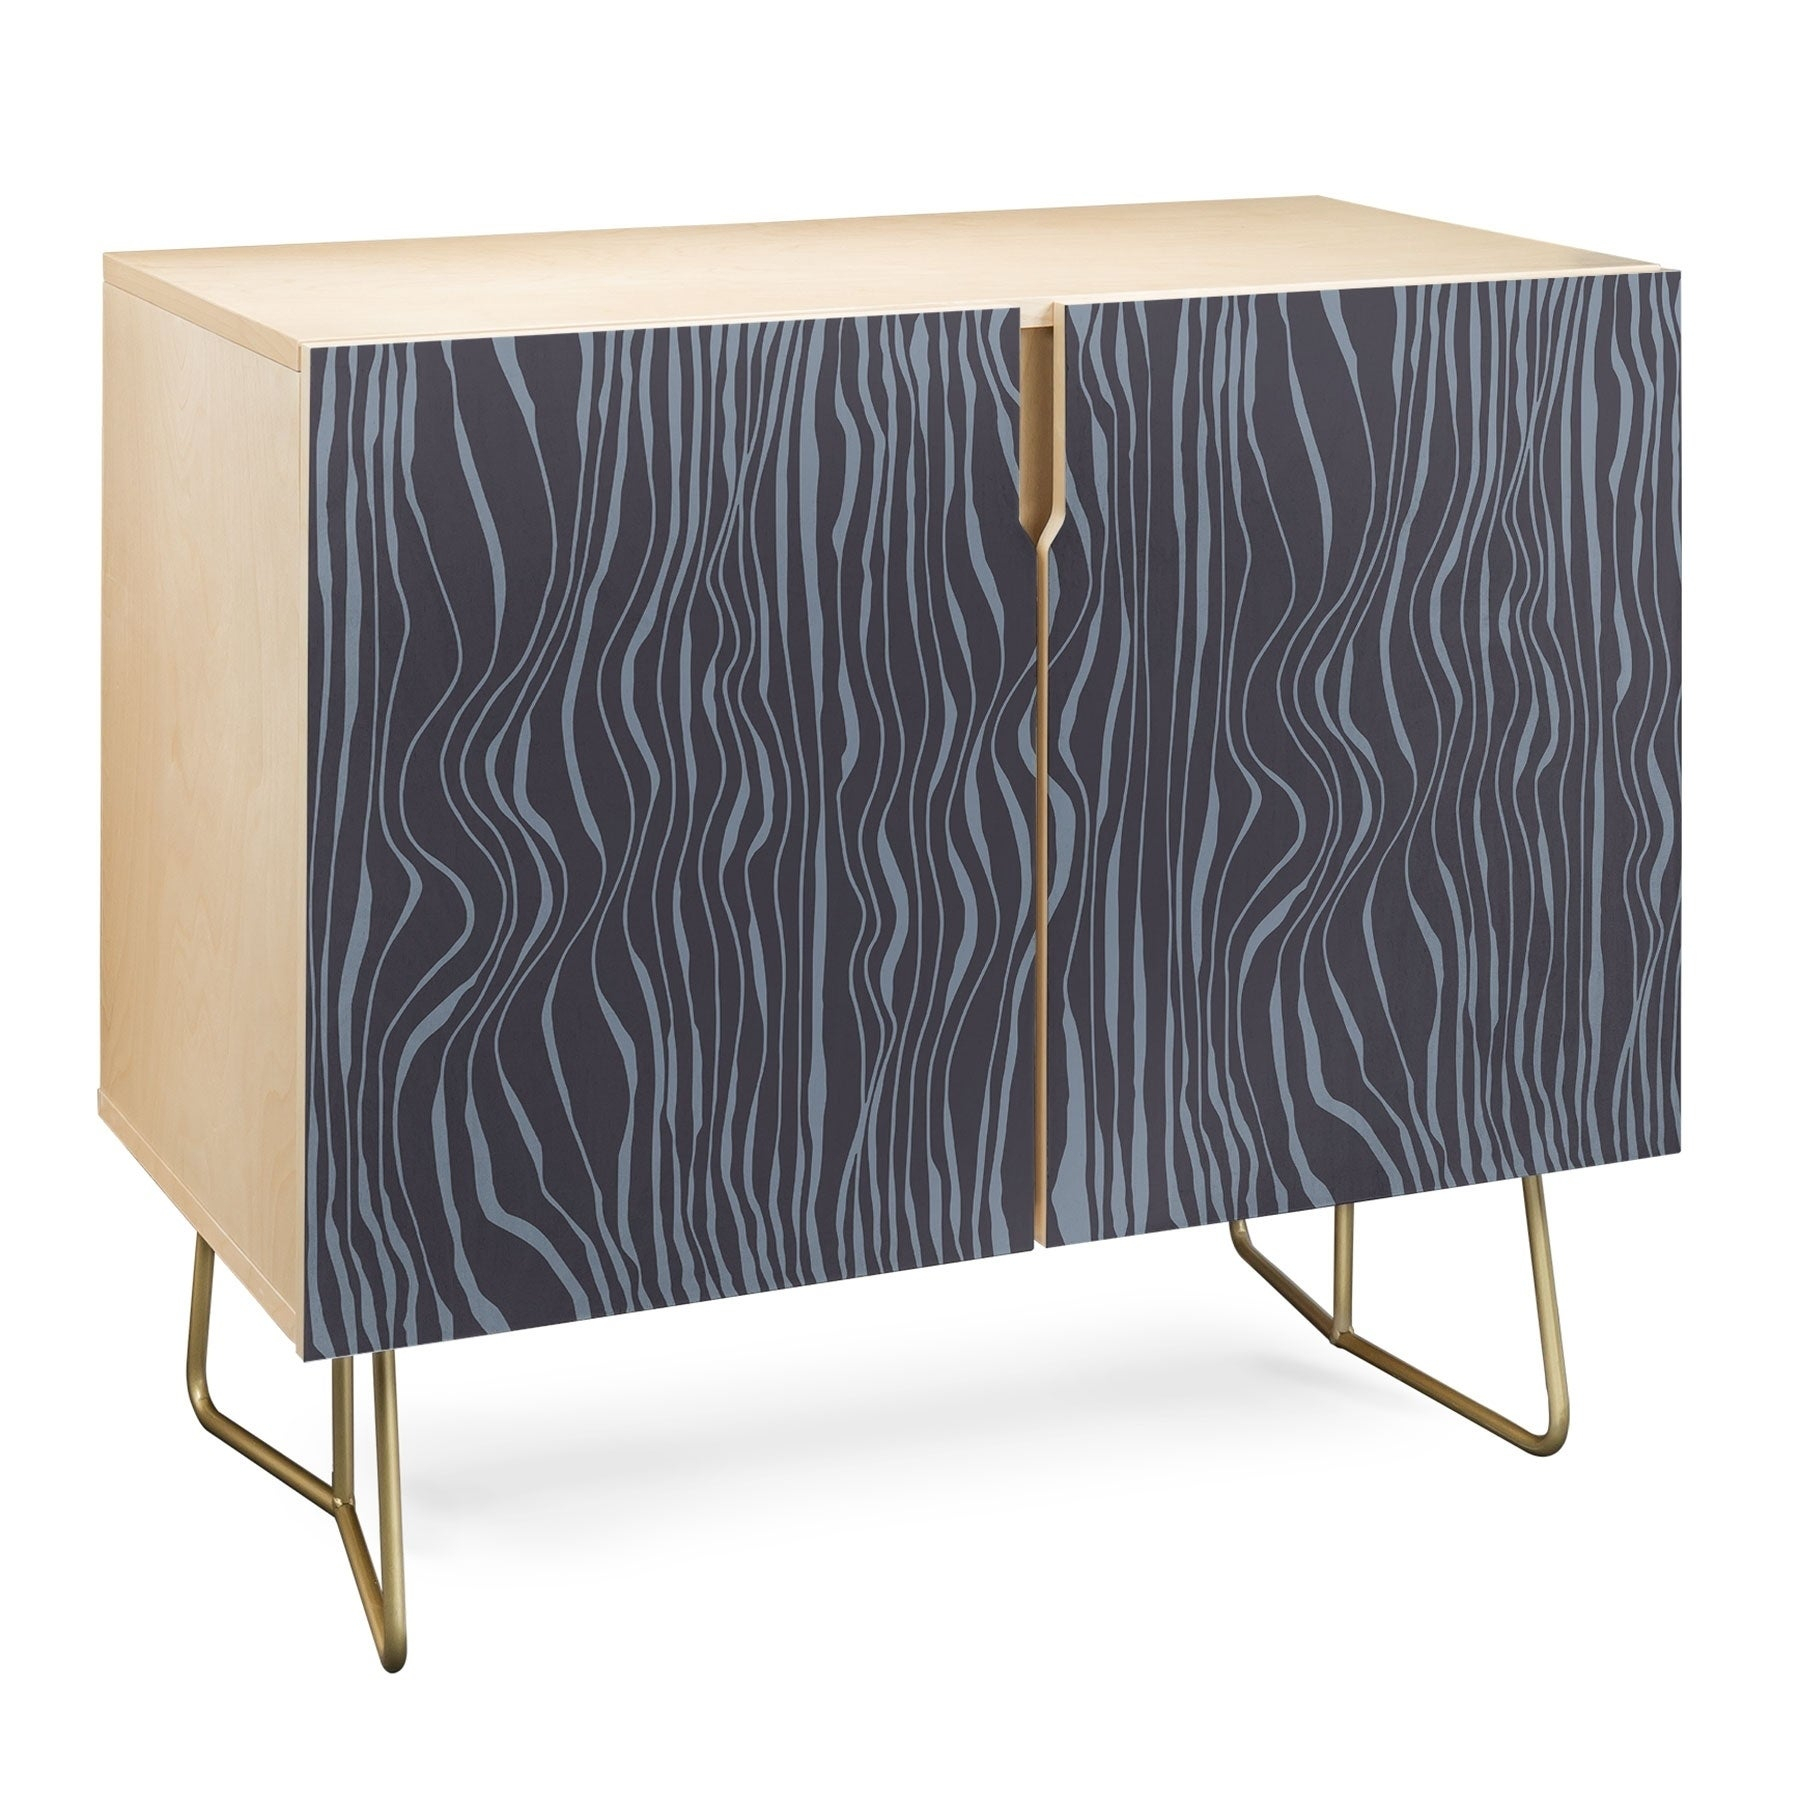 Deny Designs Wavy Stripes Credenza (Birch Or Walnut, 2 Leg Options) within Multi Stripe Credenzas (Image 13 of 30)